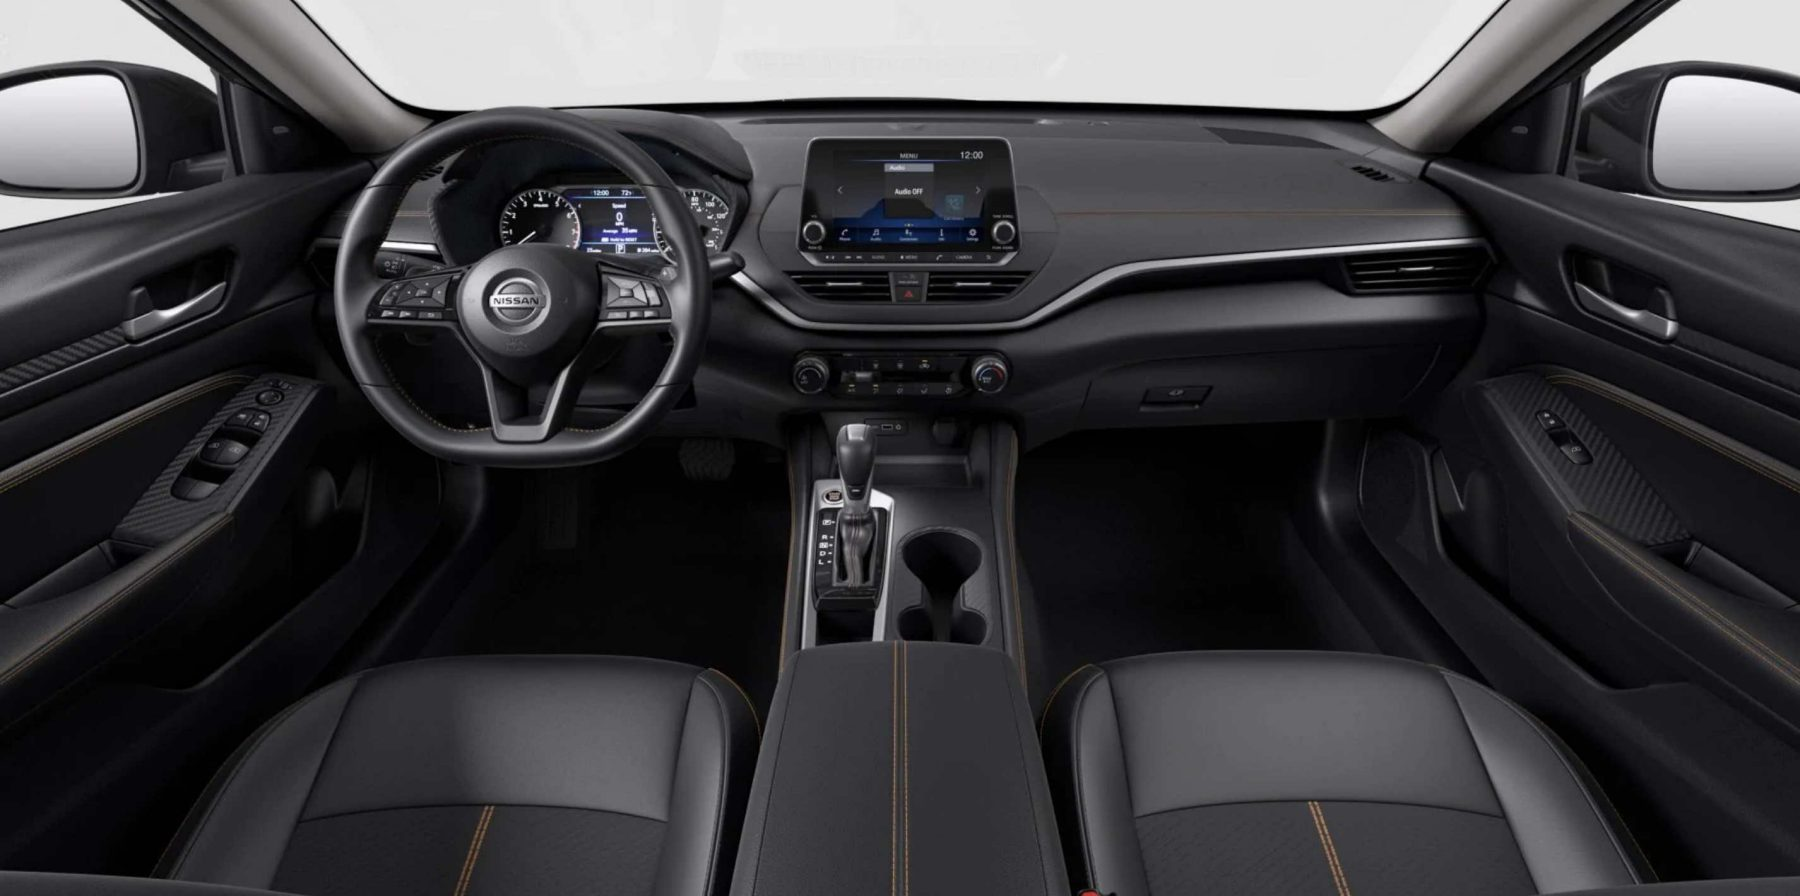 Nissan Altima interior in charcoal sport cloth